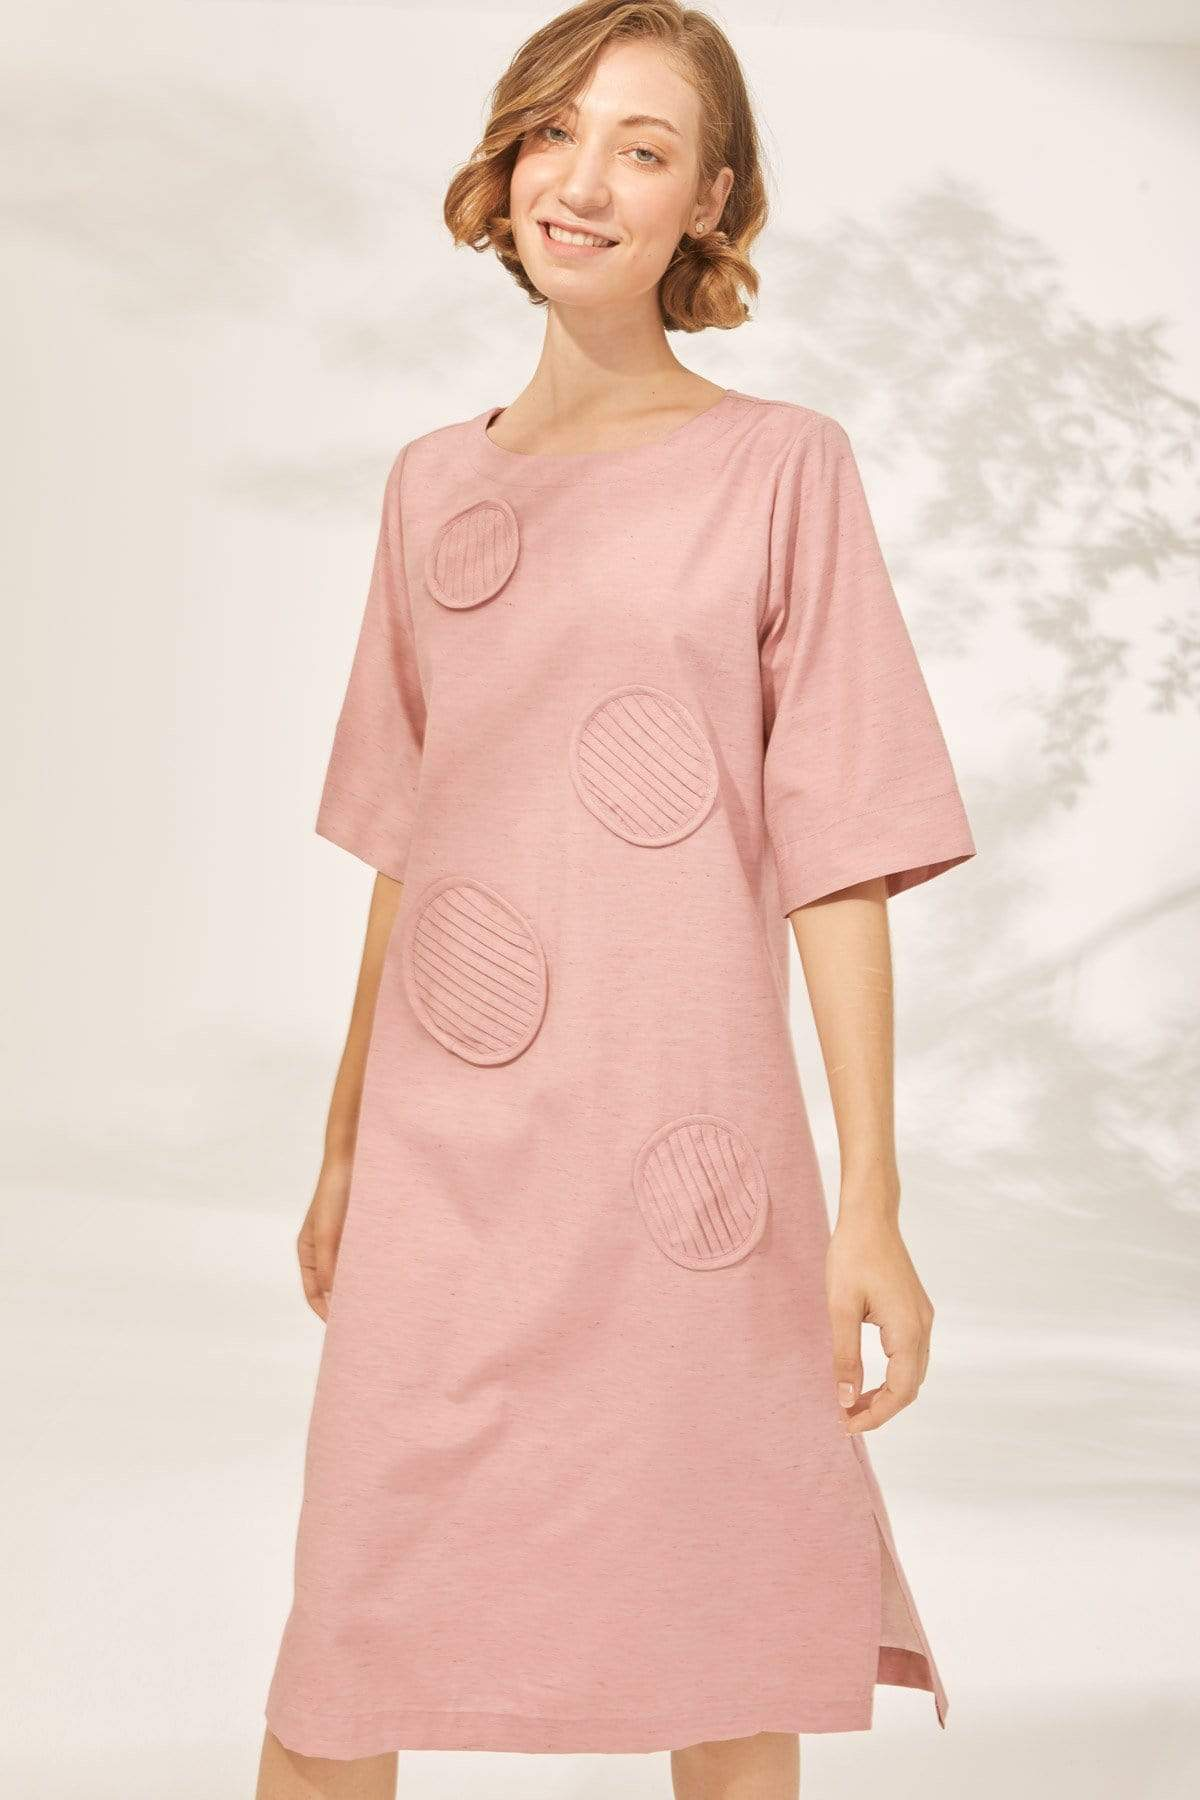 TAKTAI Dress S / Pink Bubble Pin tuck Tunic Dress